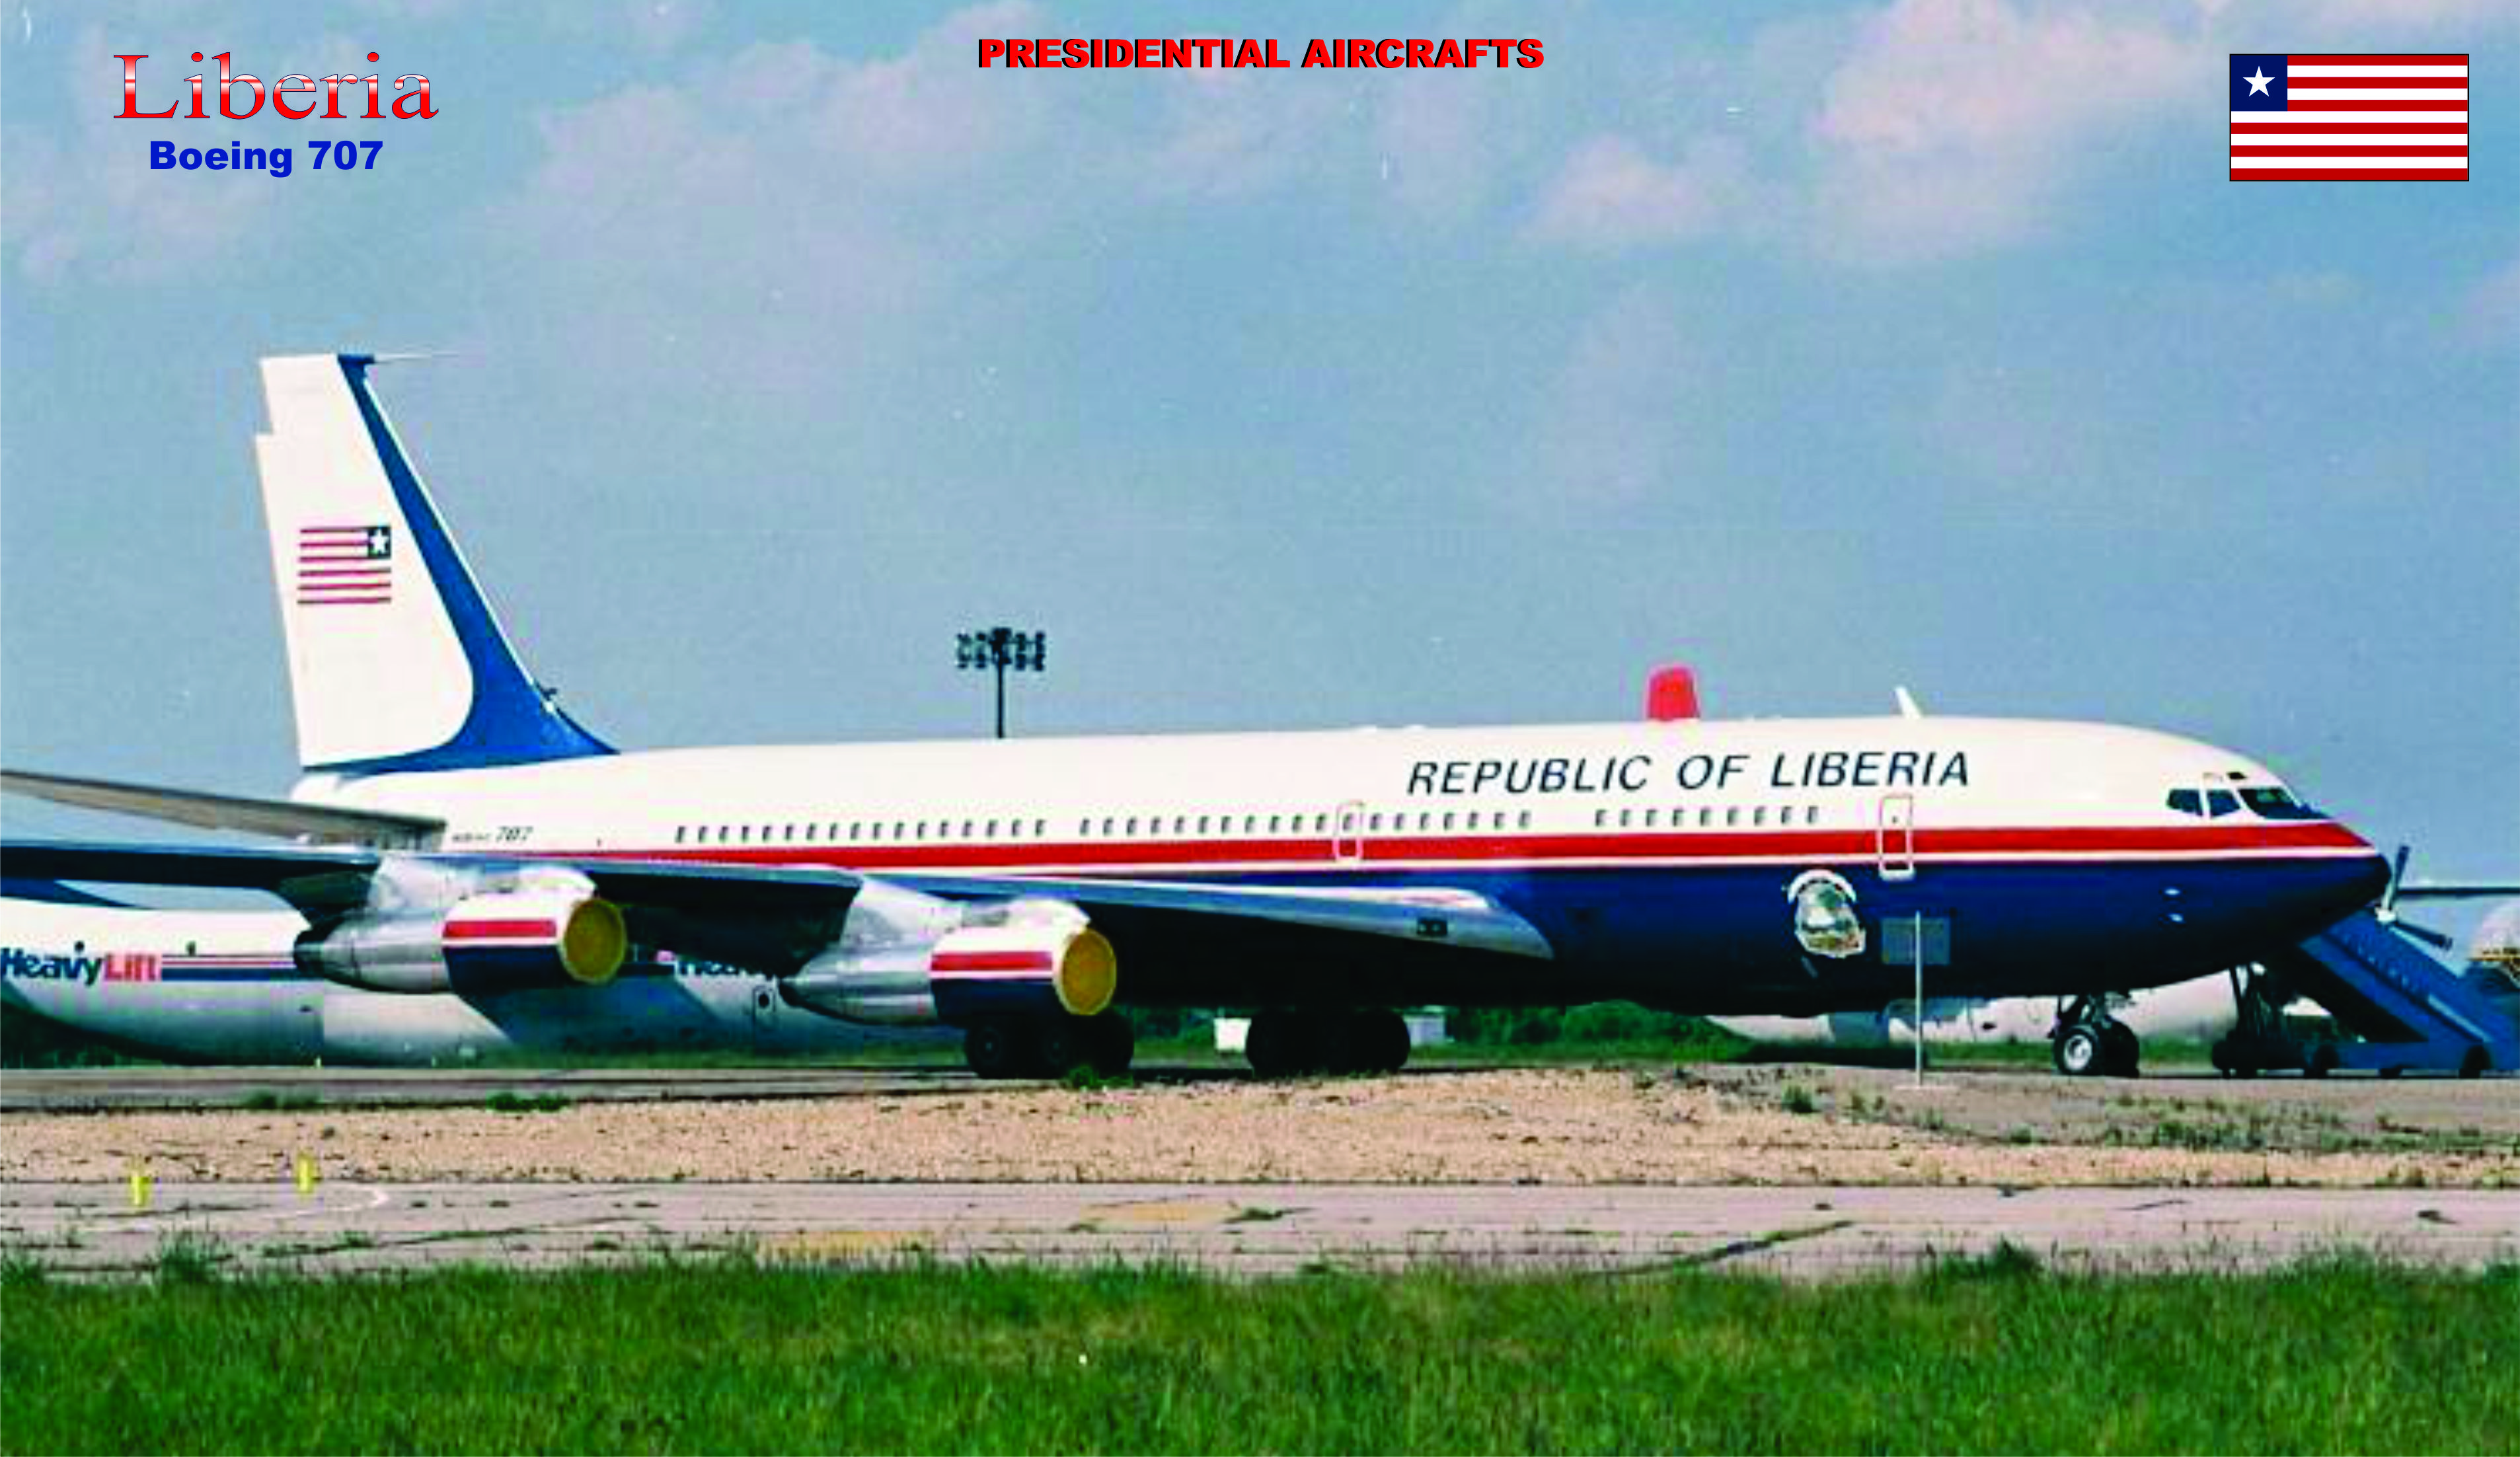 Presidential Aircraft of the Liberia Luchtvaart